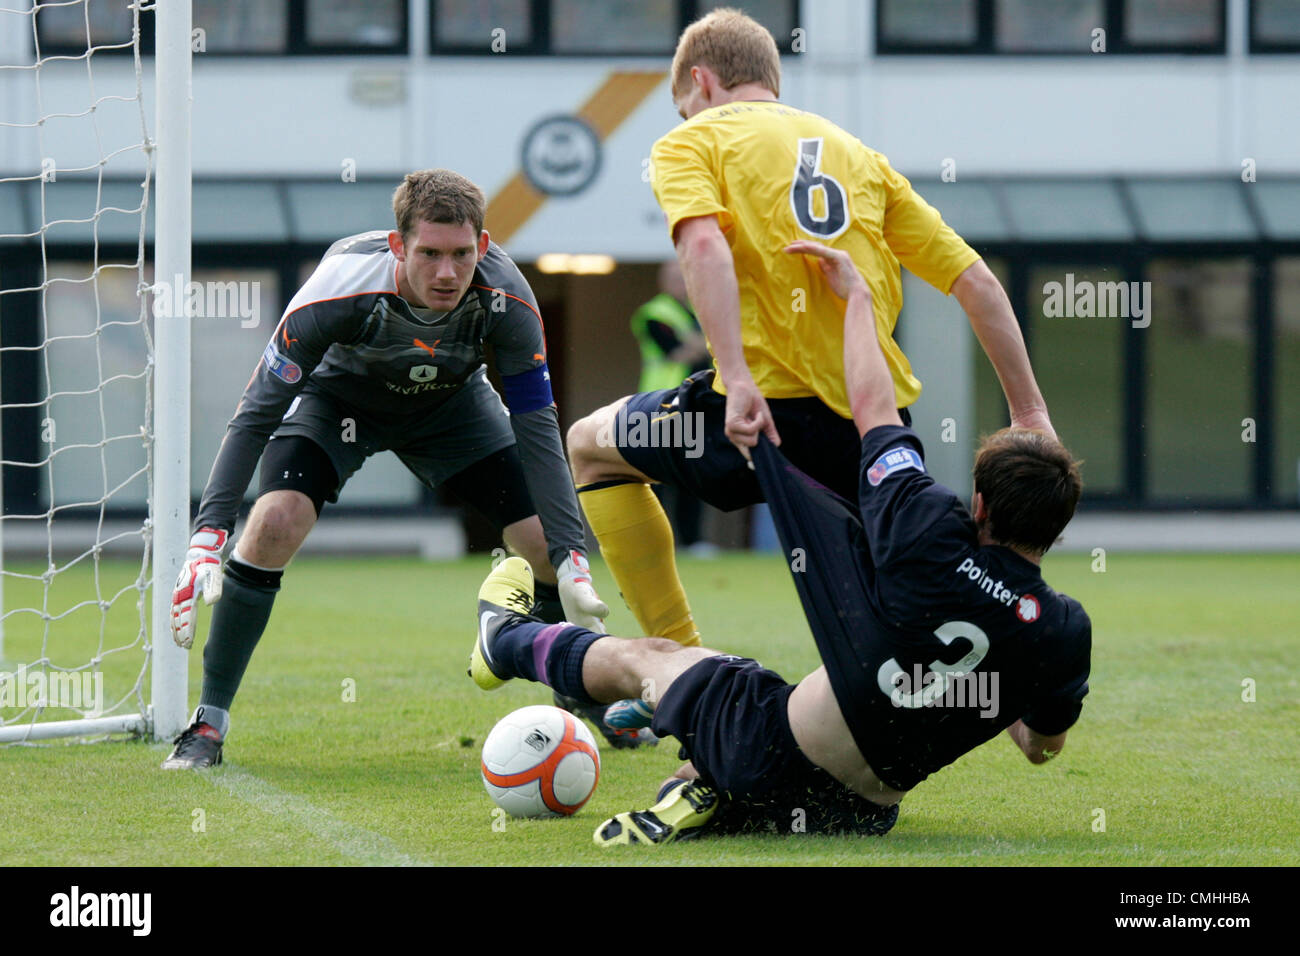 11th Aug 2012. 11.08.2012 Glasgow, Scotland. 3 Stewart Bannigan, 1 Michael McGovern and 6 Jay Fulton in action during - Stock Image